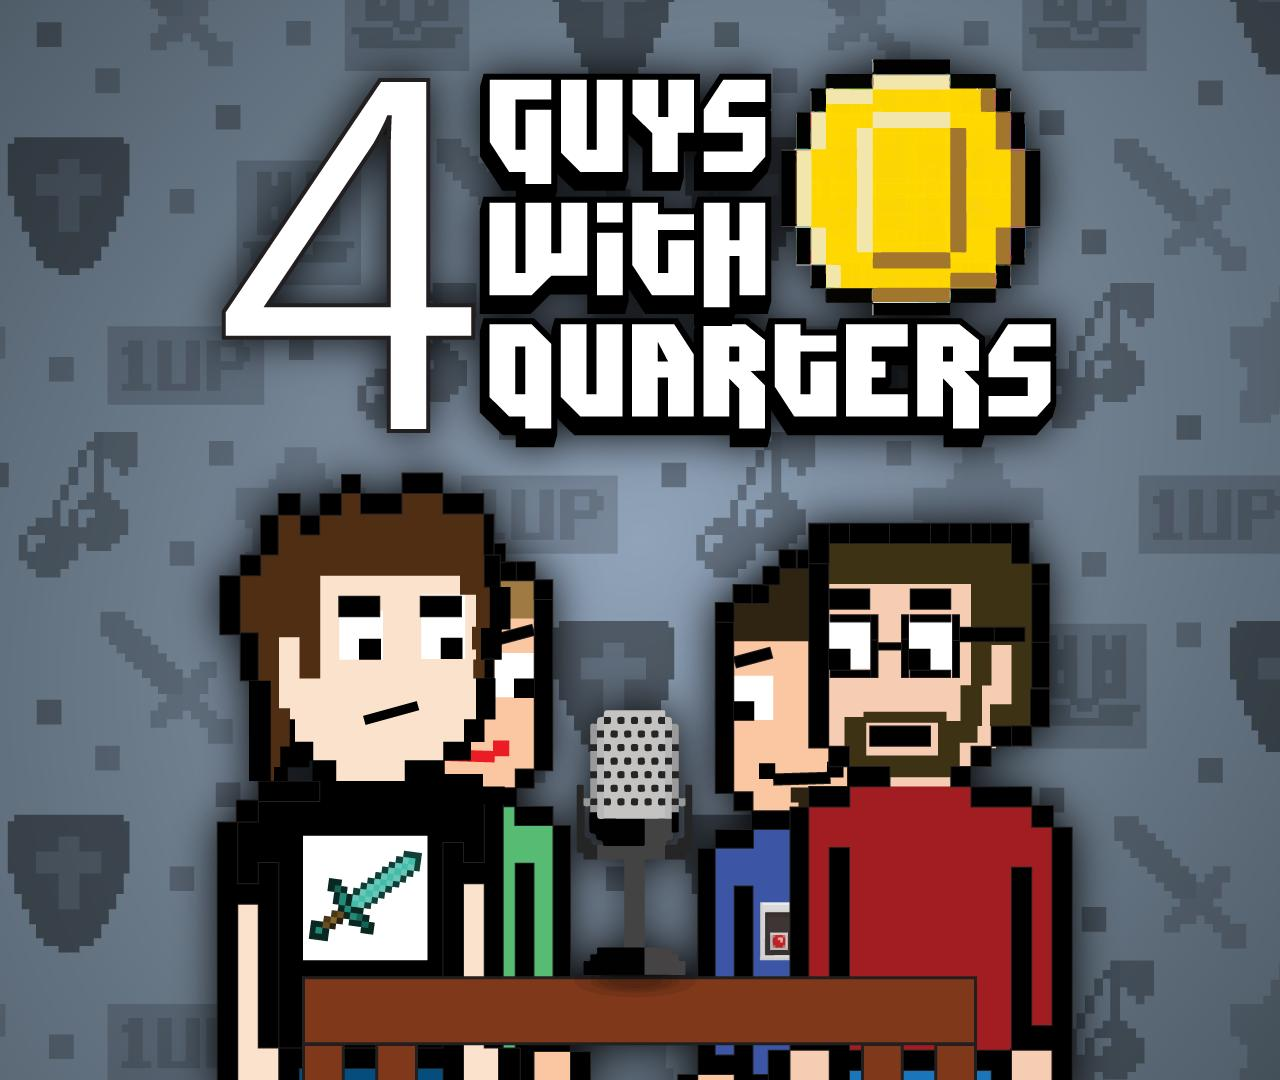 4 Guys With Quarters